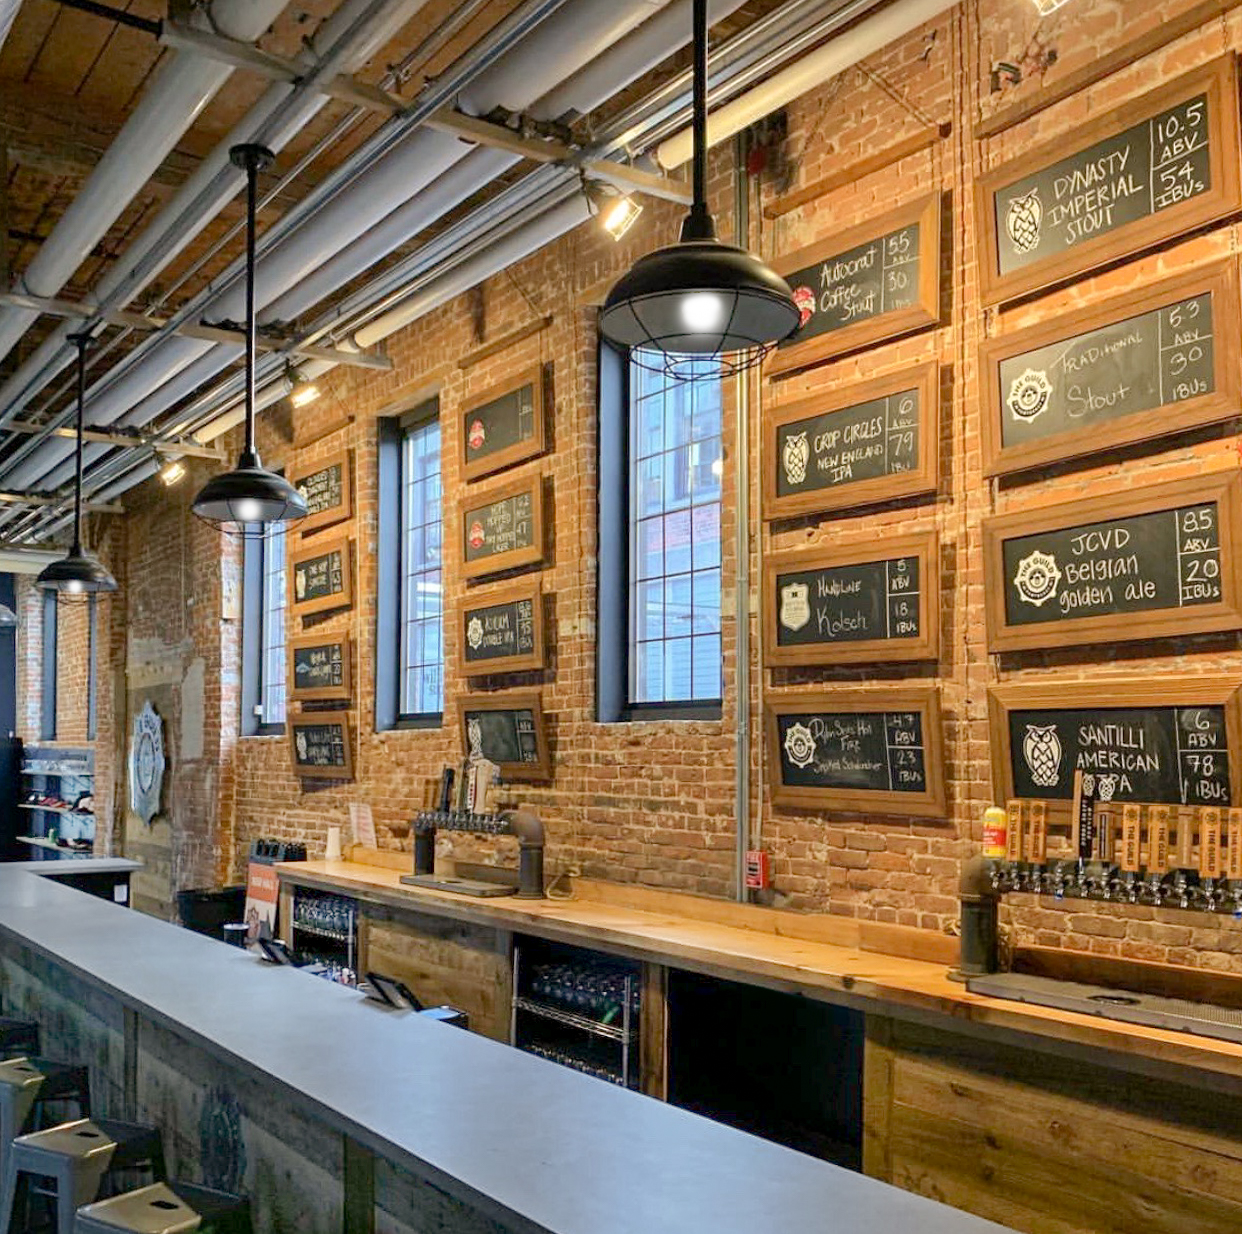 New beer hall build out for The Guild Brewery, Pawtucket, RI.